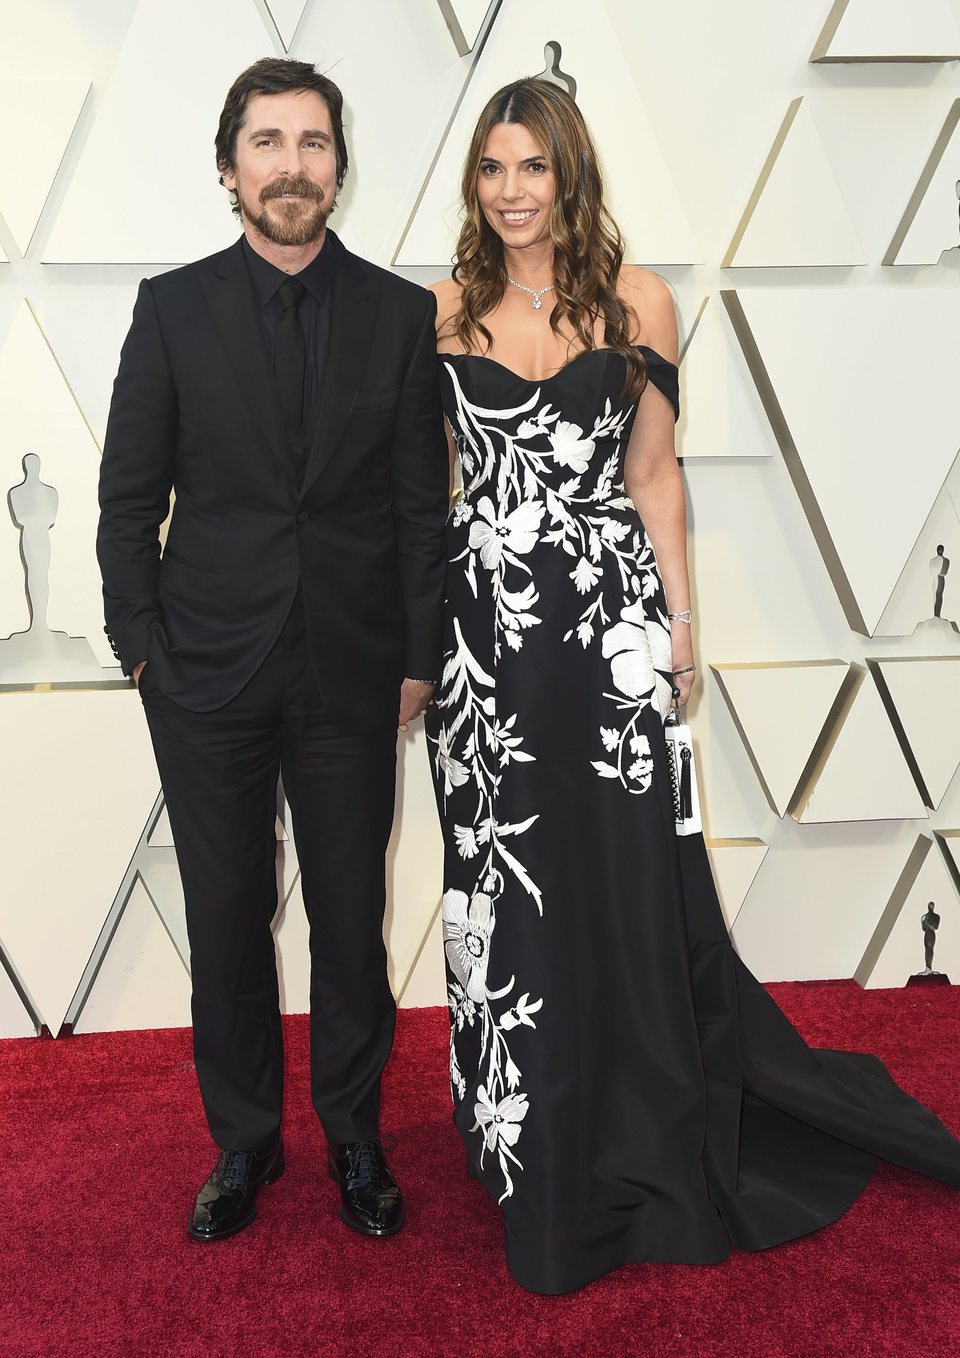 Christian Bale and Sibi Blazic on the red carpet at the Oscars 2019